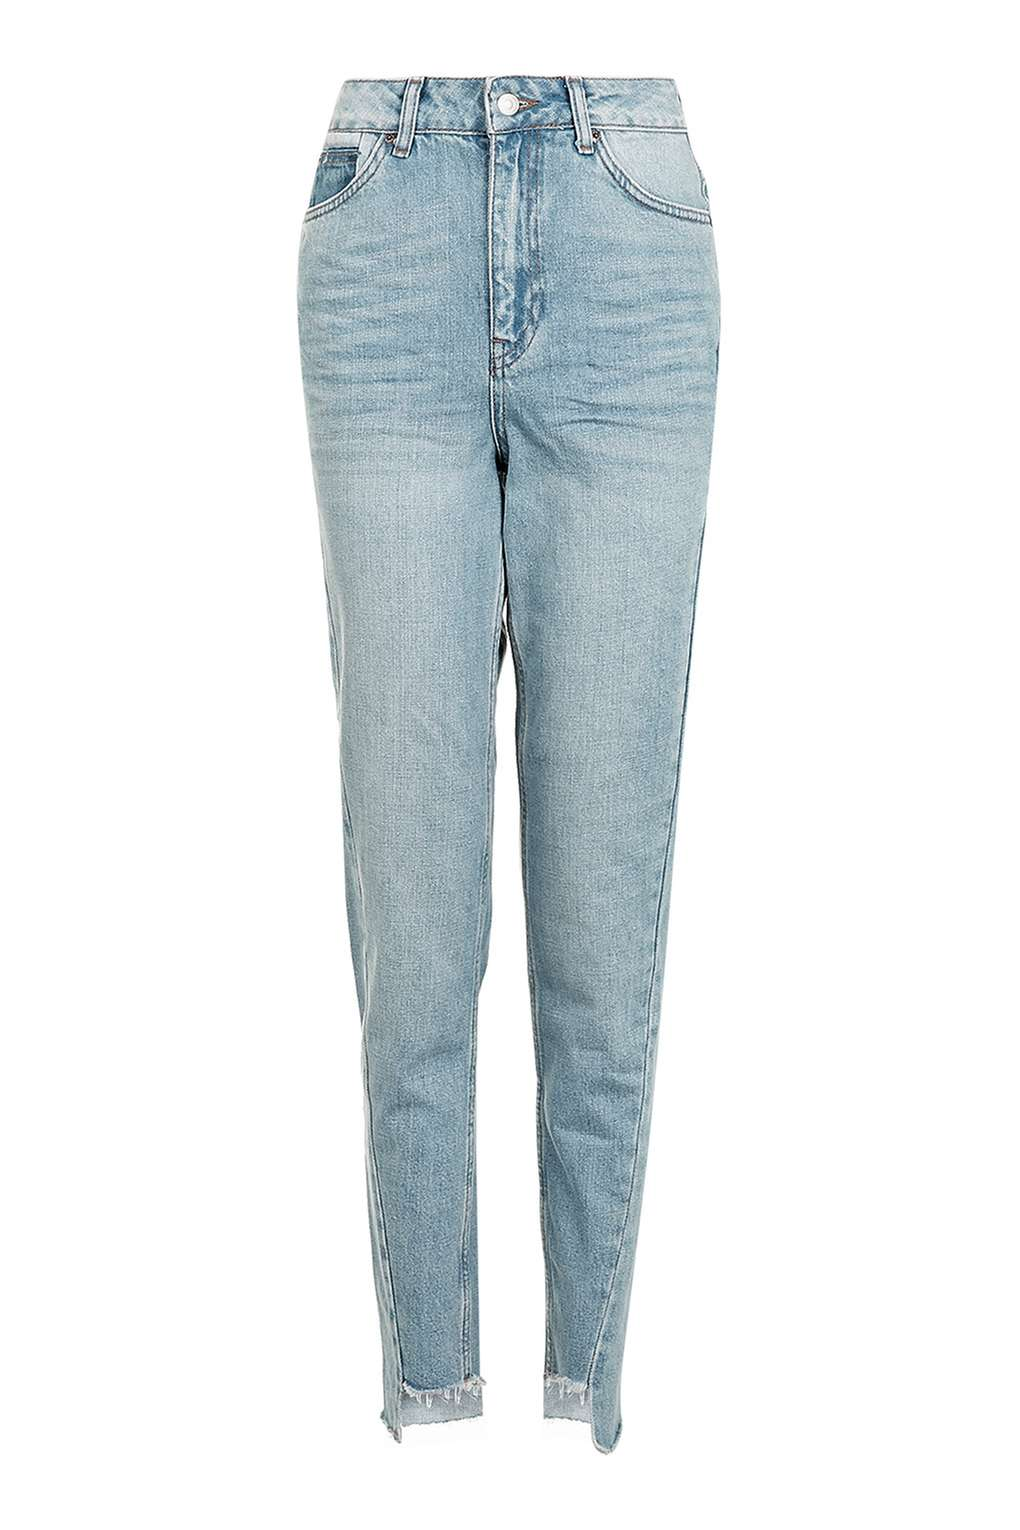 Topshop Tall Mom Jeans